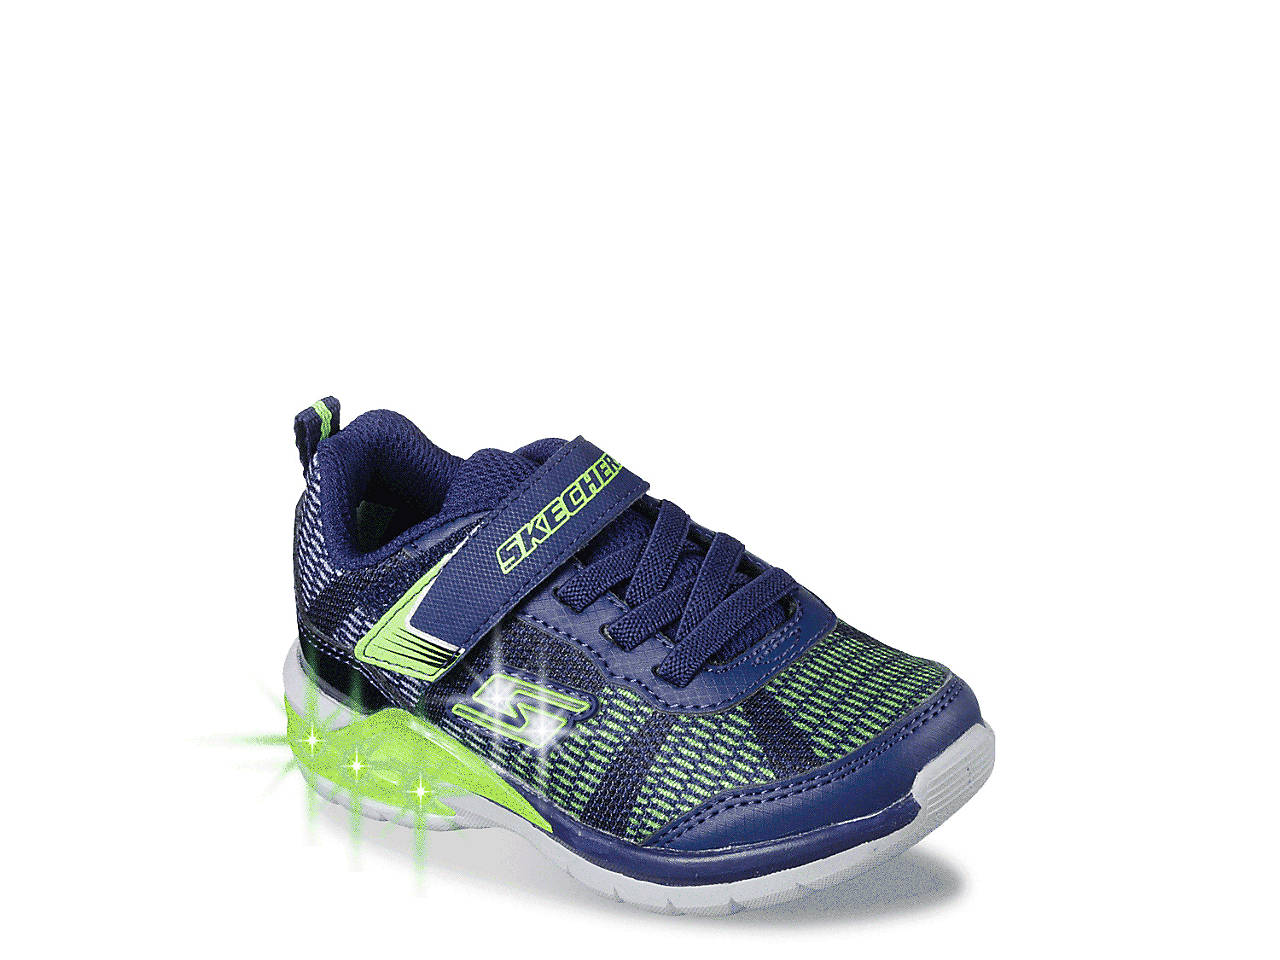 e29efe3e0c6 Skechers S Lights Erupters II Lava Waves Toddler Light-Up Sneaker ...